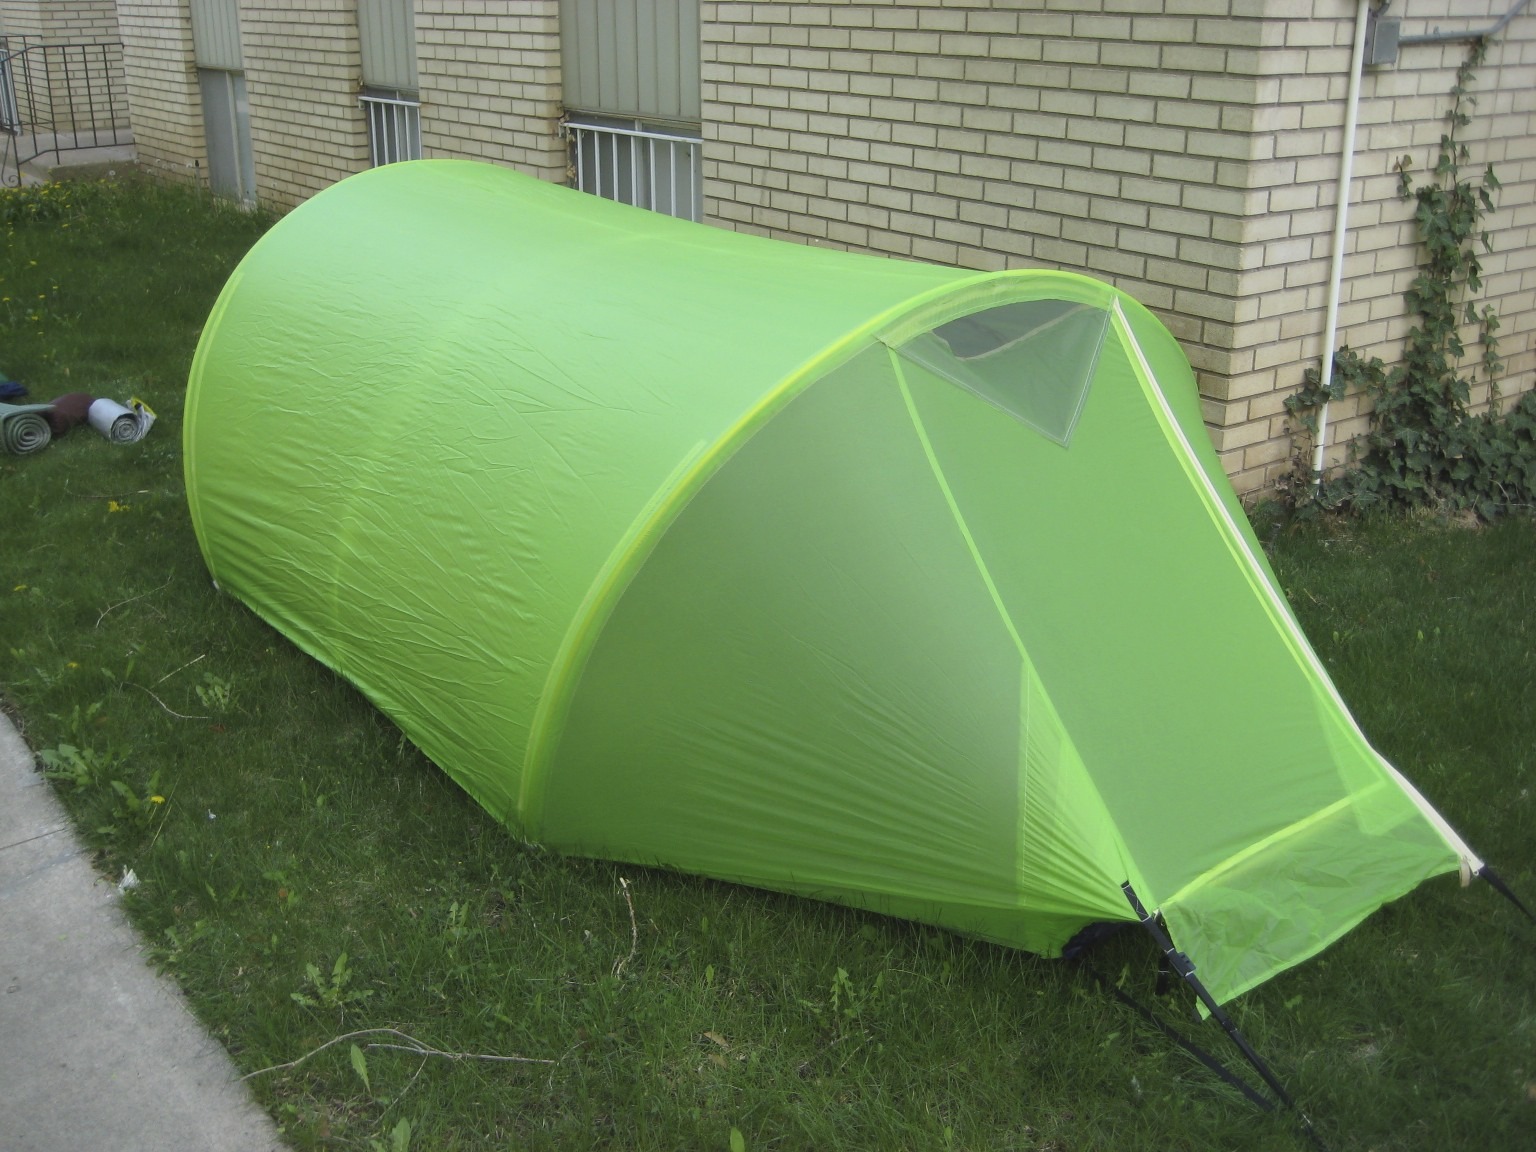 Stephensonu0027s Warmlite 3R Tent Review & Gear:30: Stephensonu0027s Warmlite 3R Tent Review